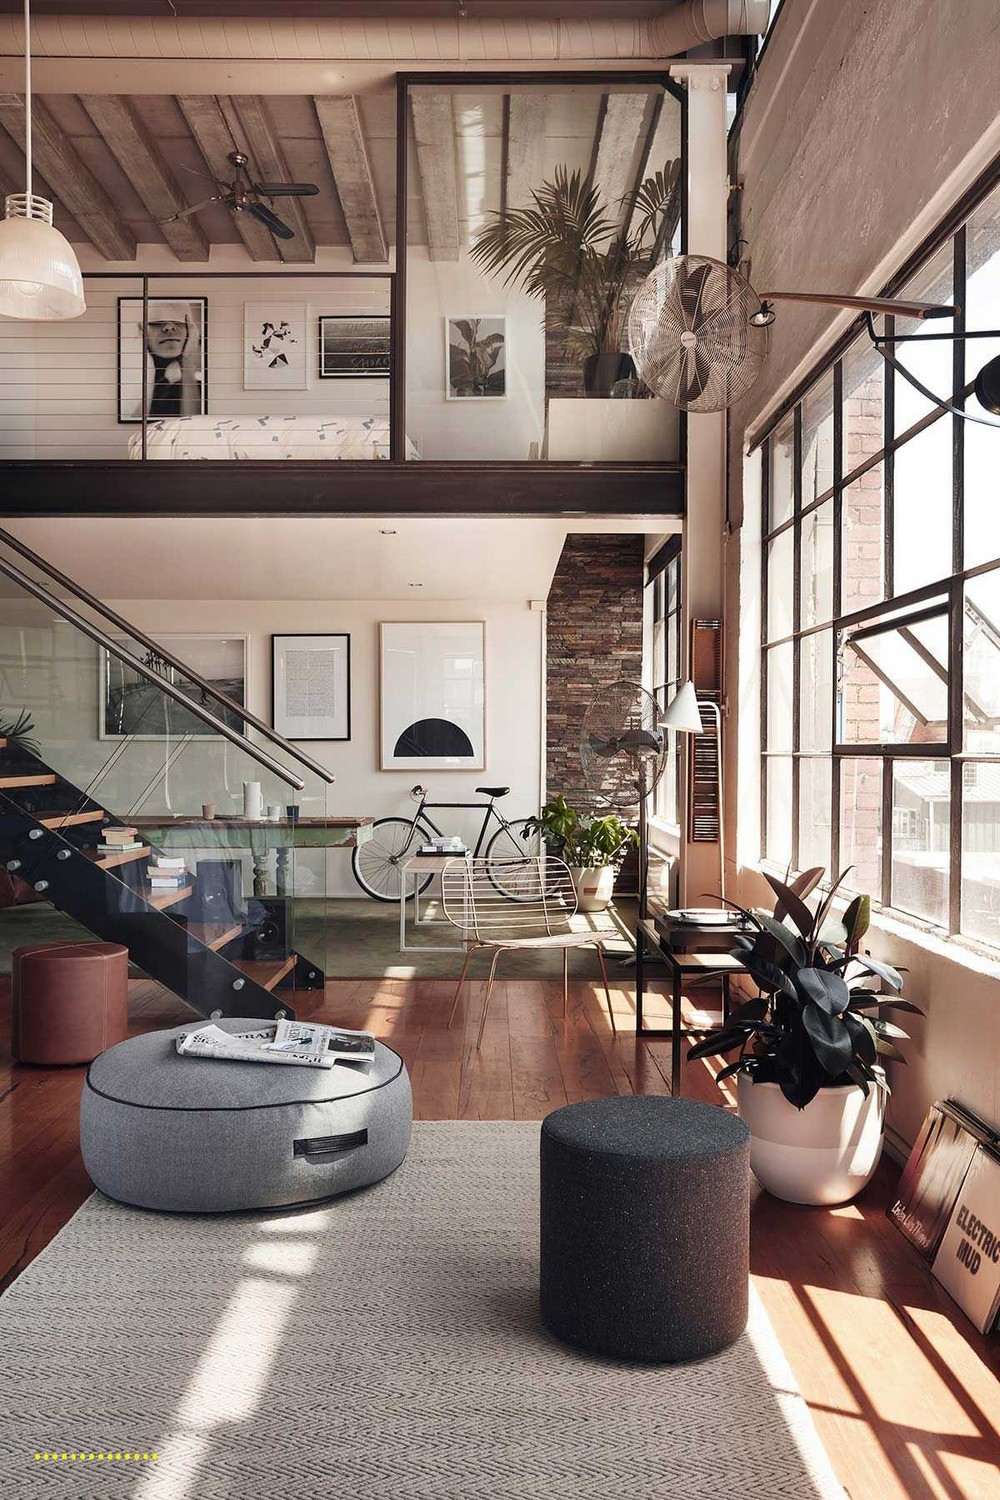 Be Inspired by a Series of Stunning New York Industrial Lofts 10 New York Industrial Lofts Be Inspired by a Series of Stunning New York Industrial Lofts Be Inspired by a Series of Stunning New York Industrial Lofts 10